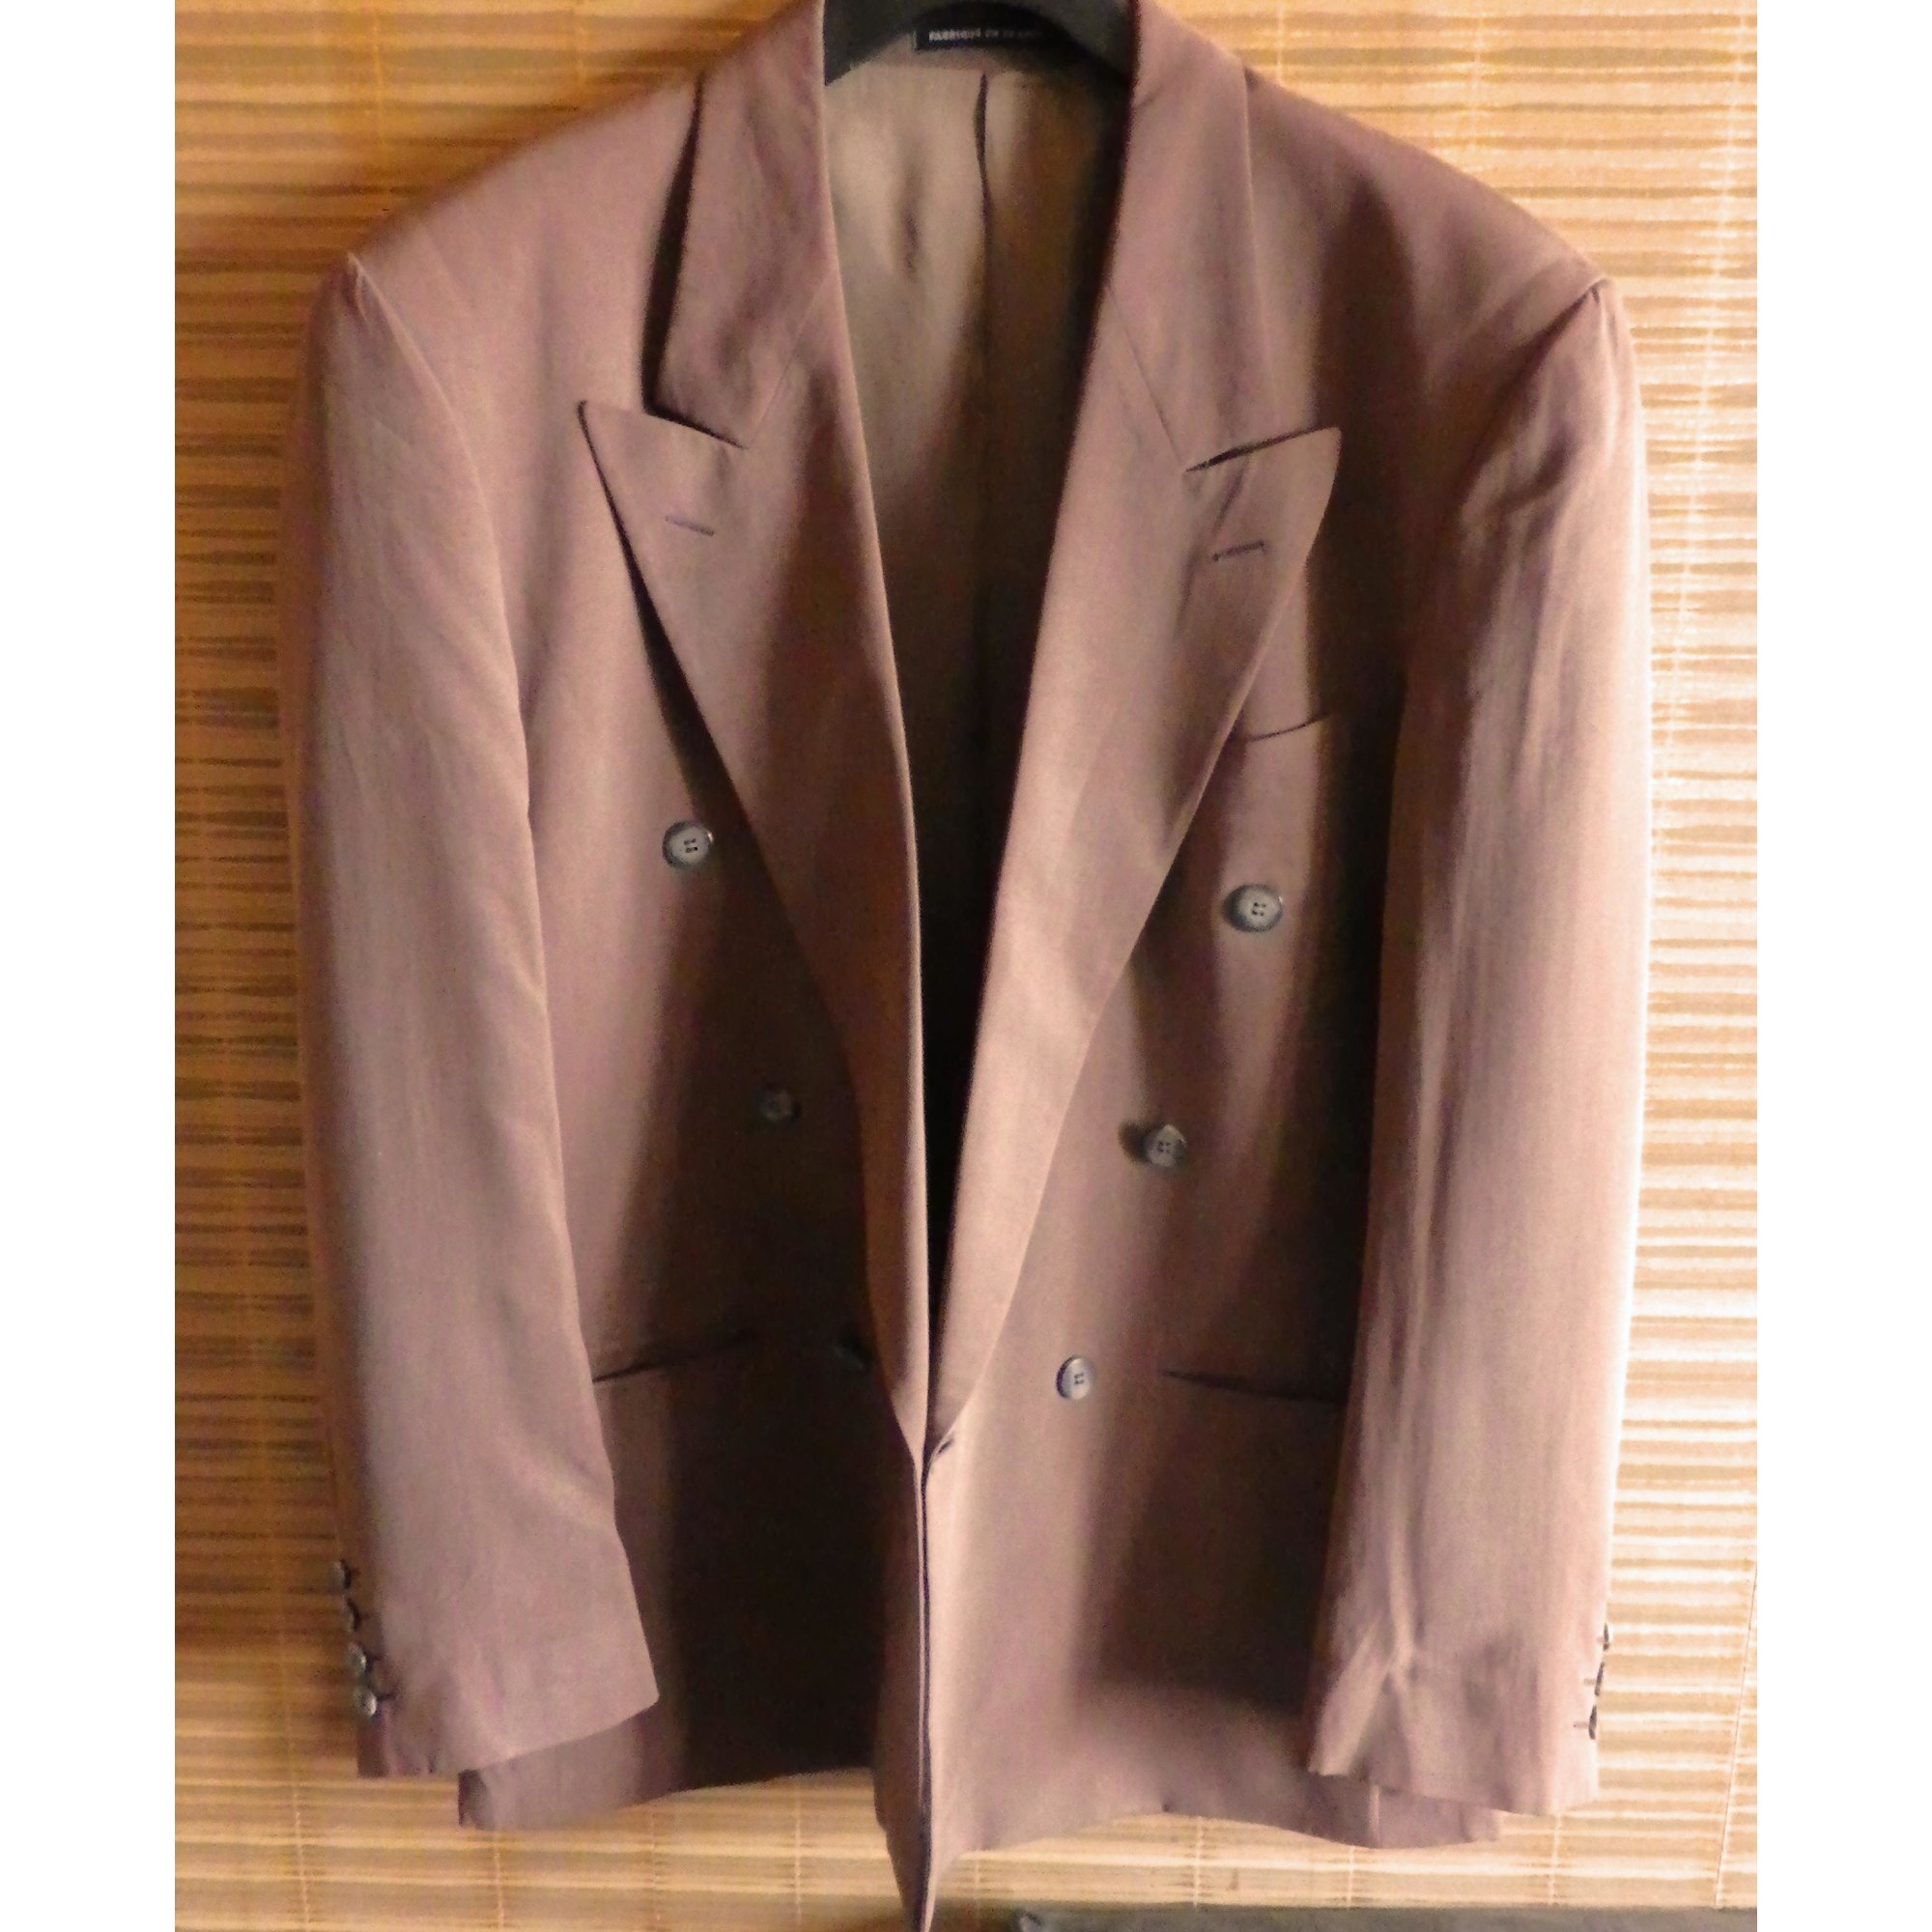 Veste YVES SAINT LAURENT Marron